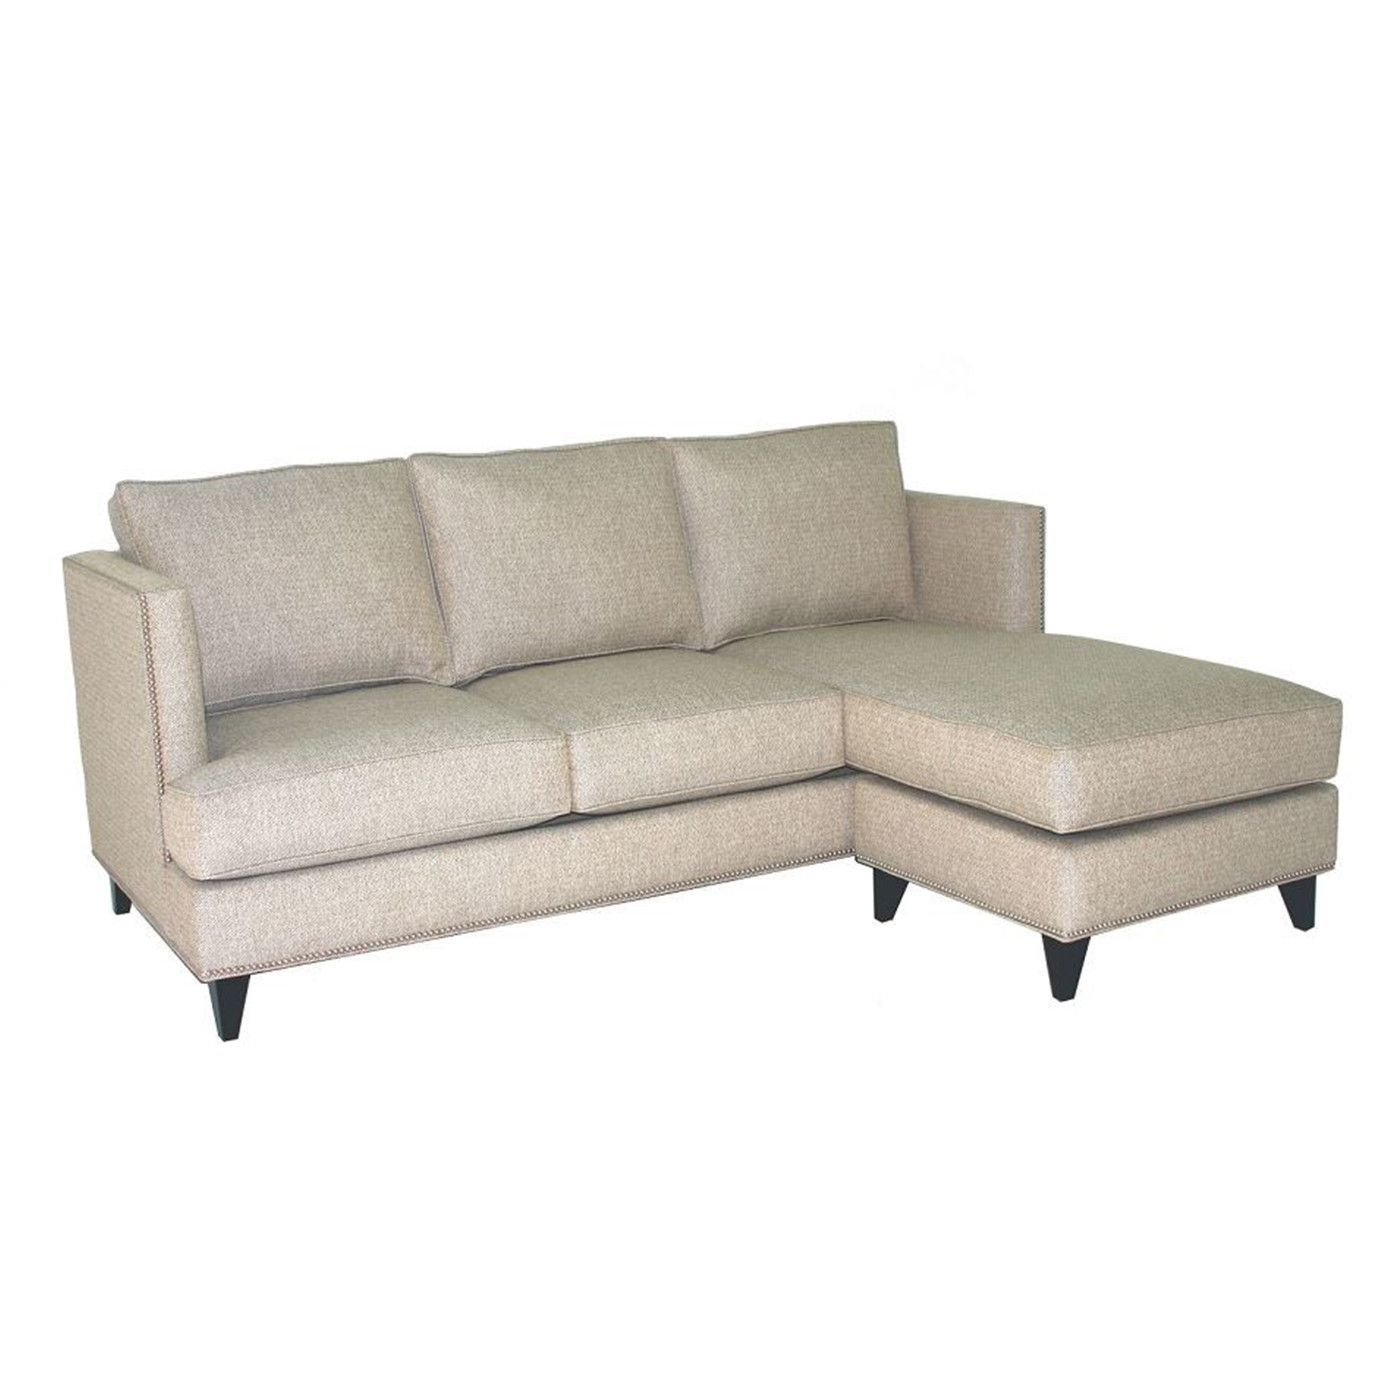 The Osborne Apartment Size Sofa Offers A Wide Seating Area But Is